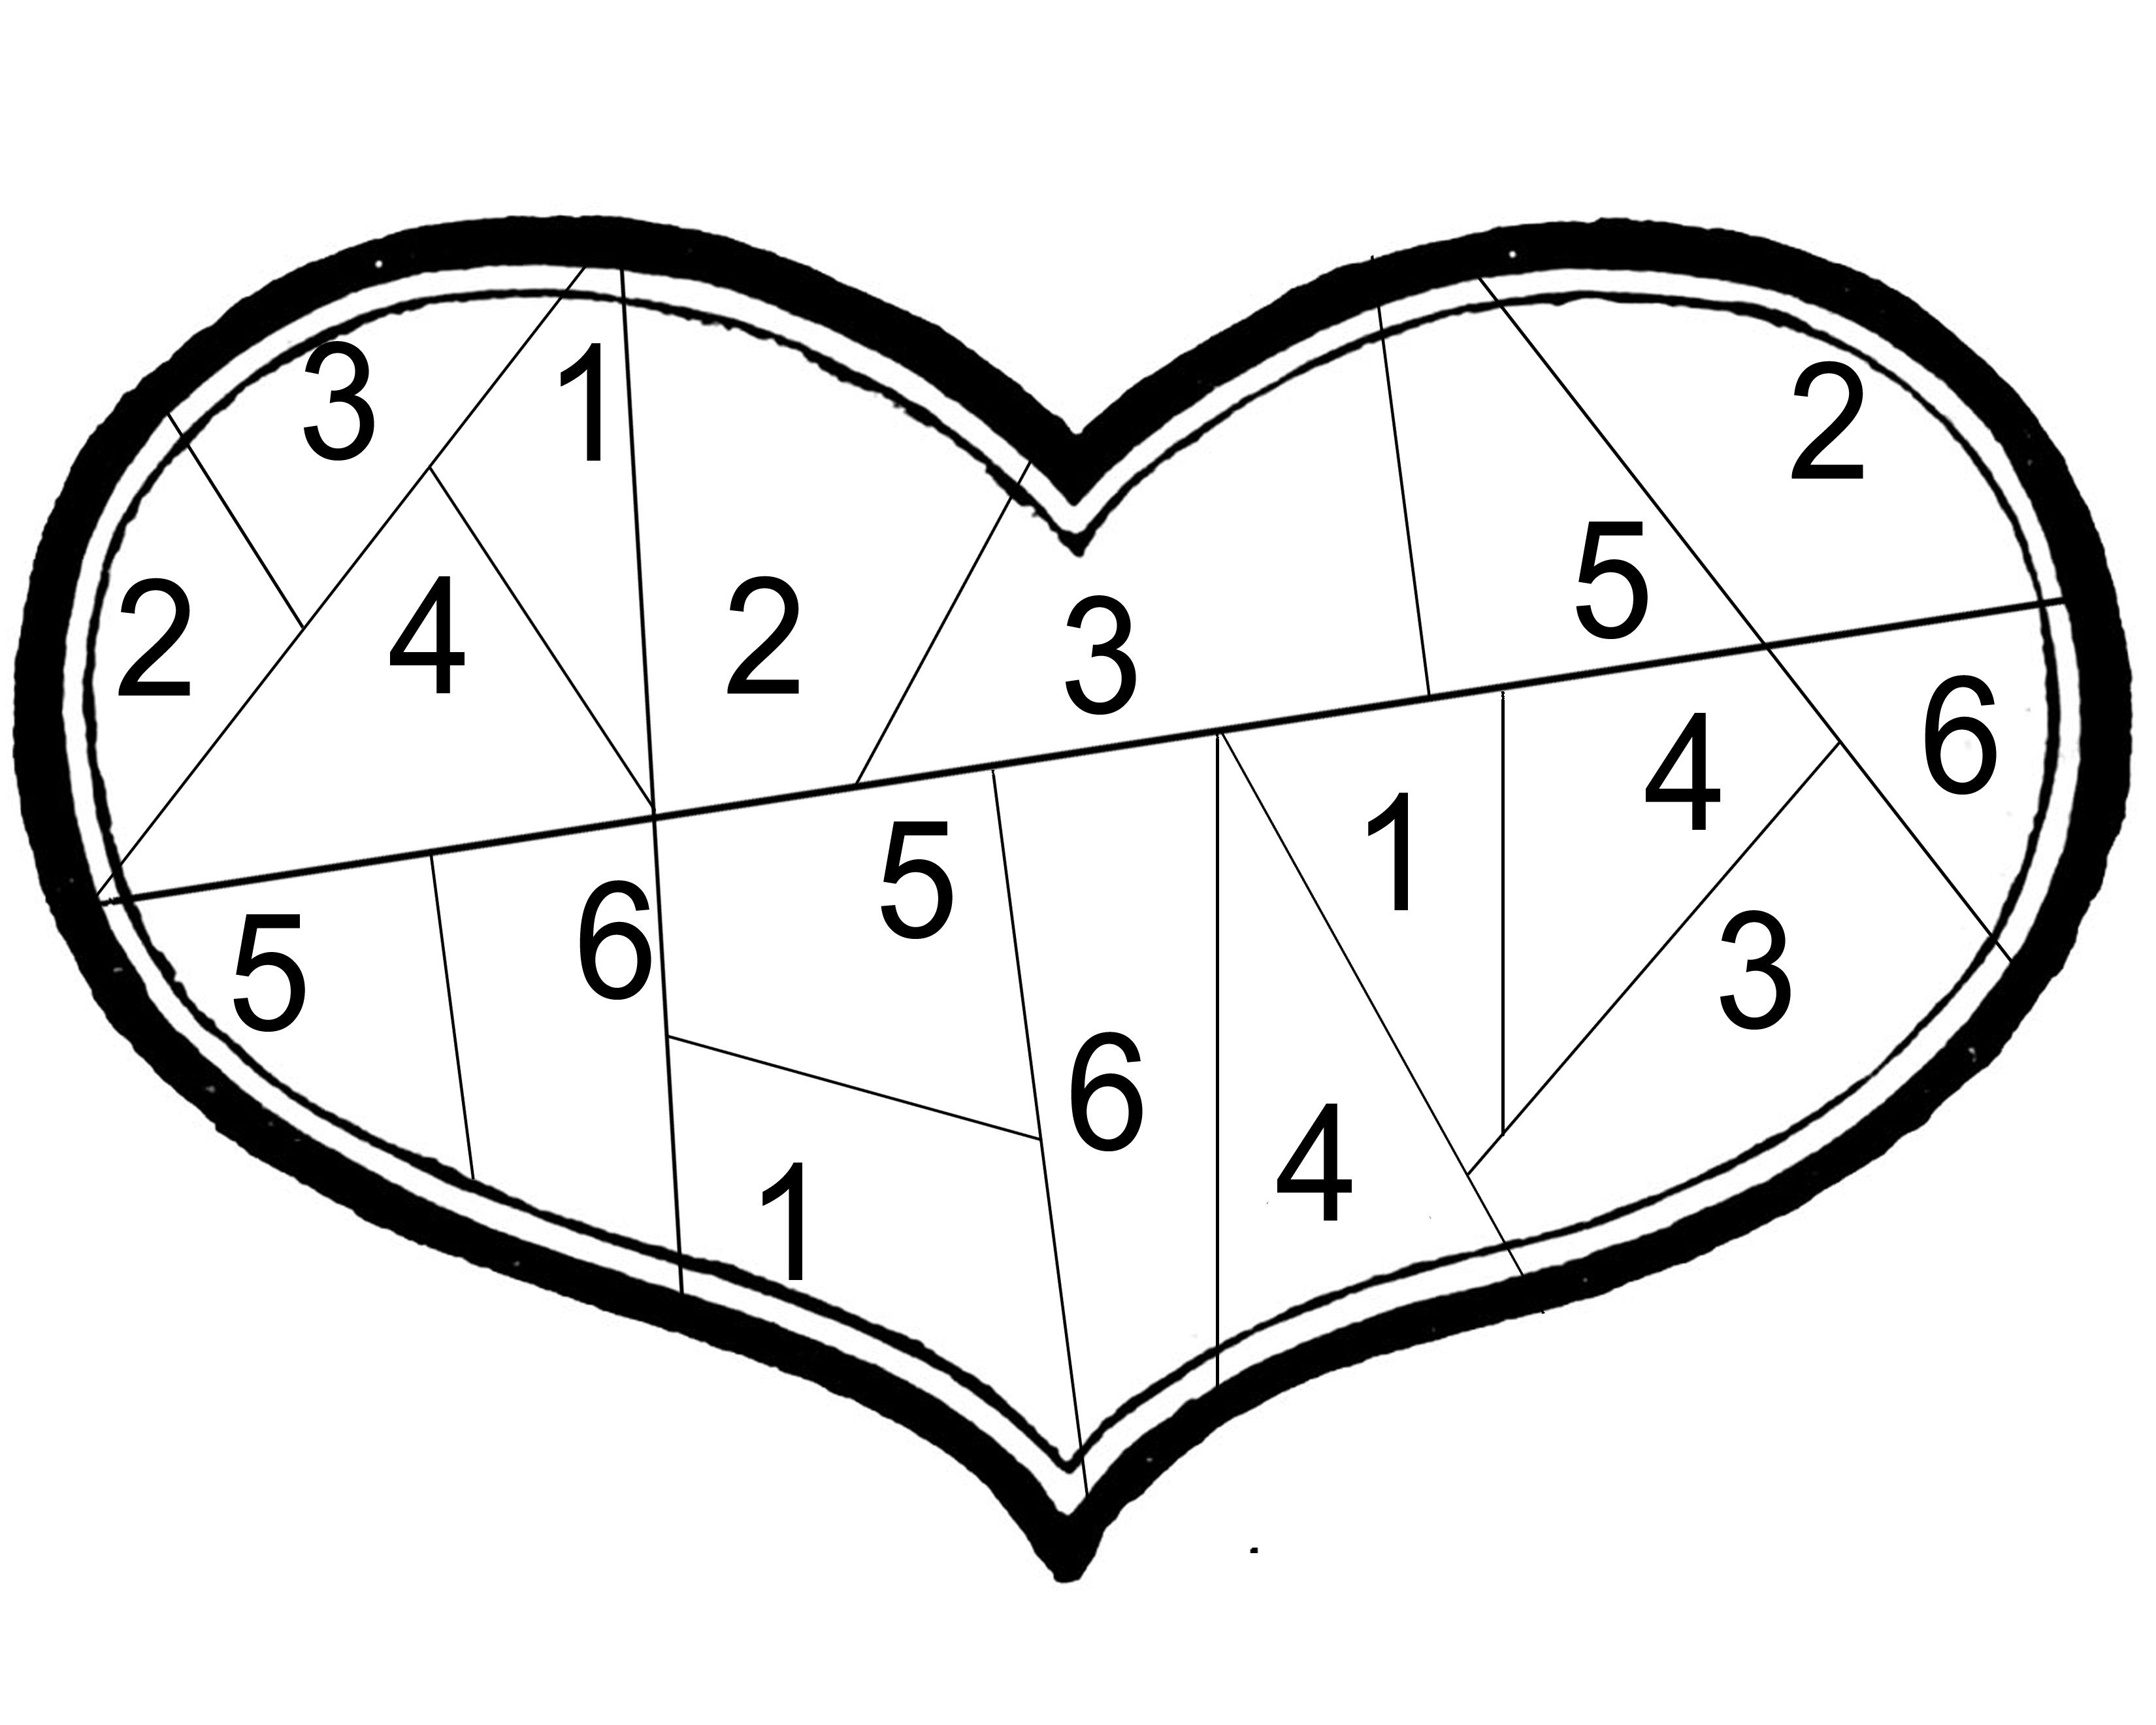 Valentines Dice Game First Person To Color The Heart Wins